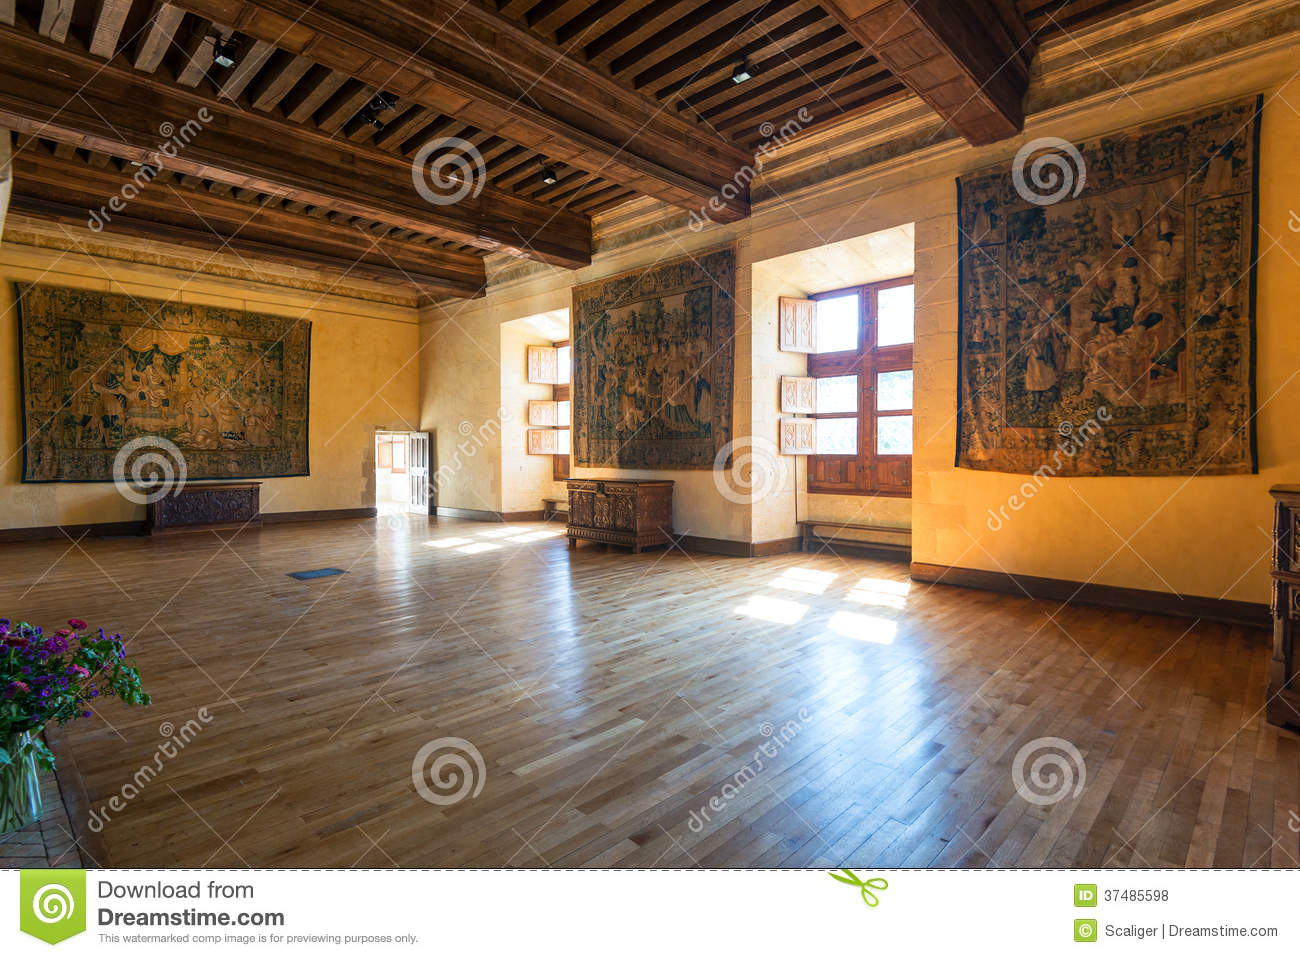 Chateau de azay le rideau int rieur france photo stock for Interieur france